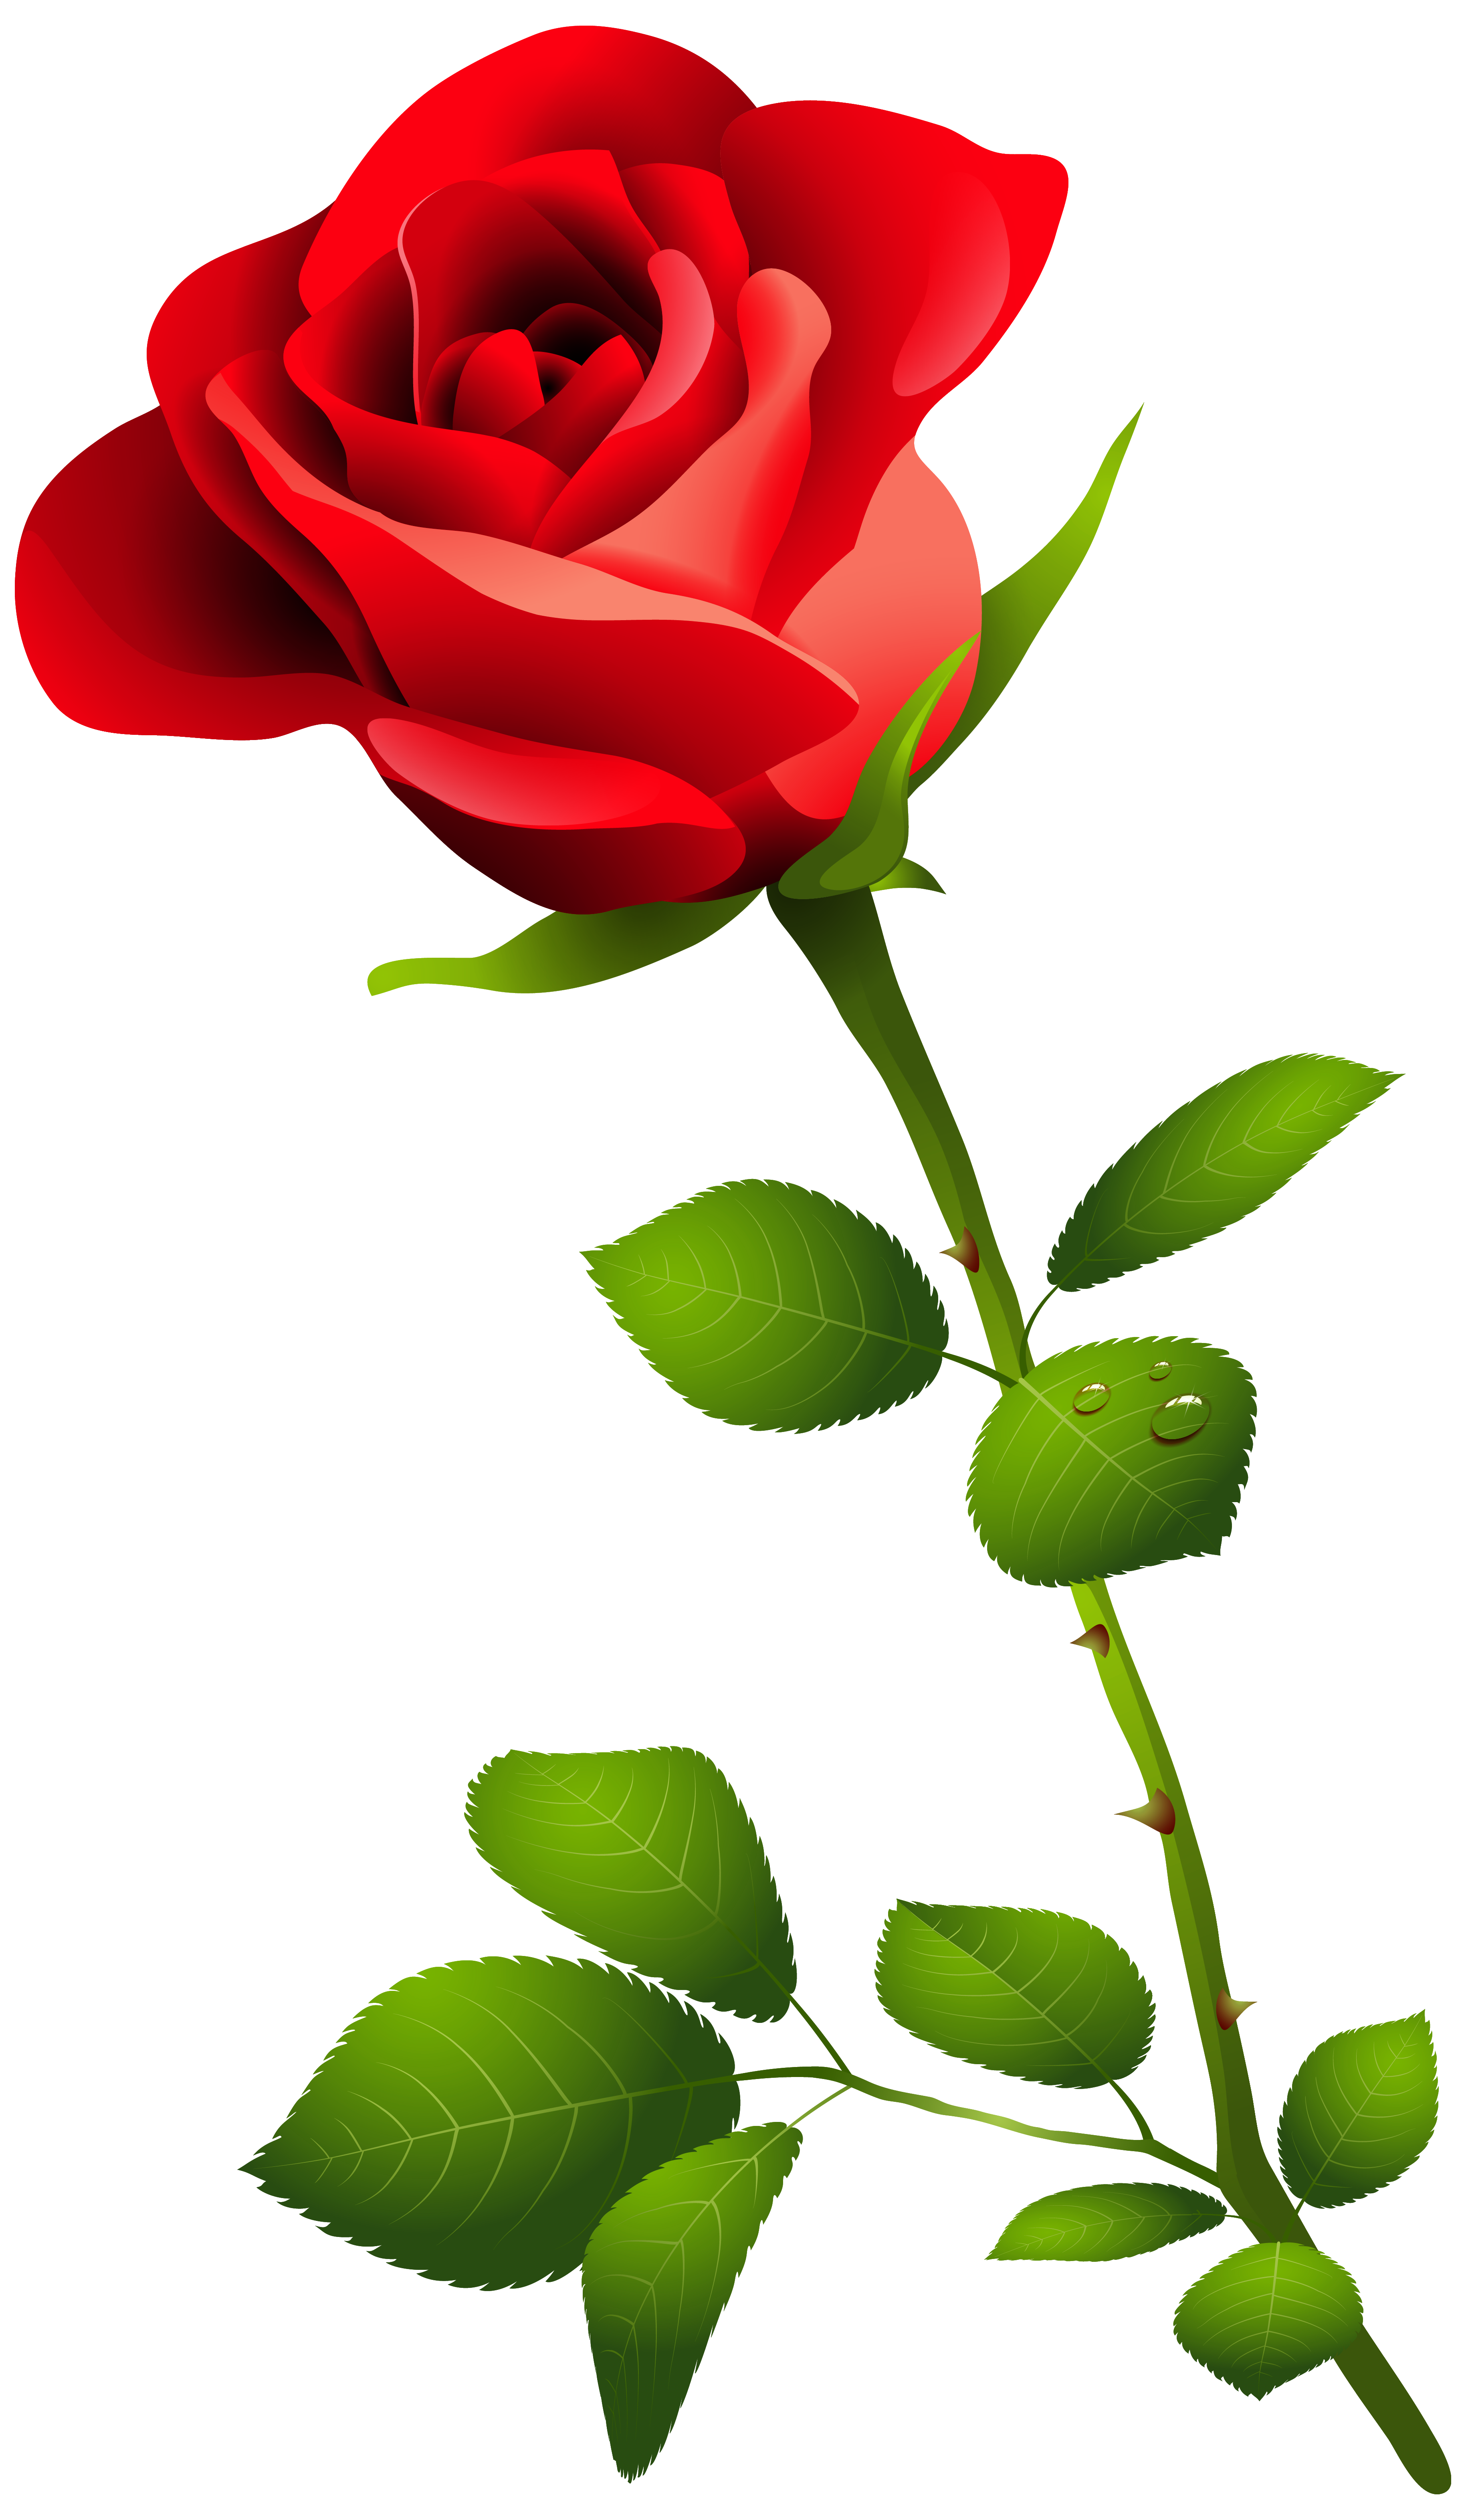 Rose clipart. Red with stem png